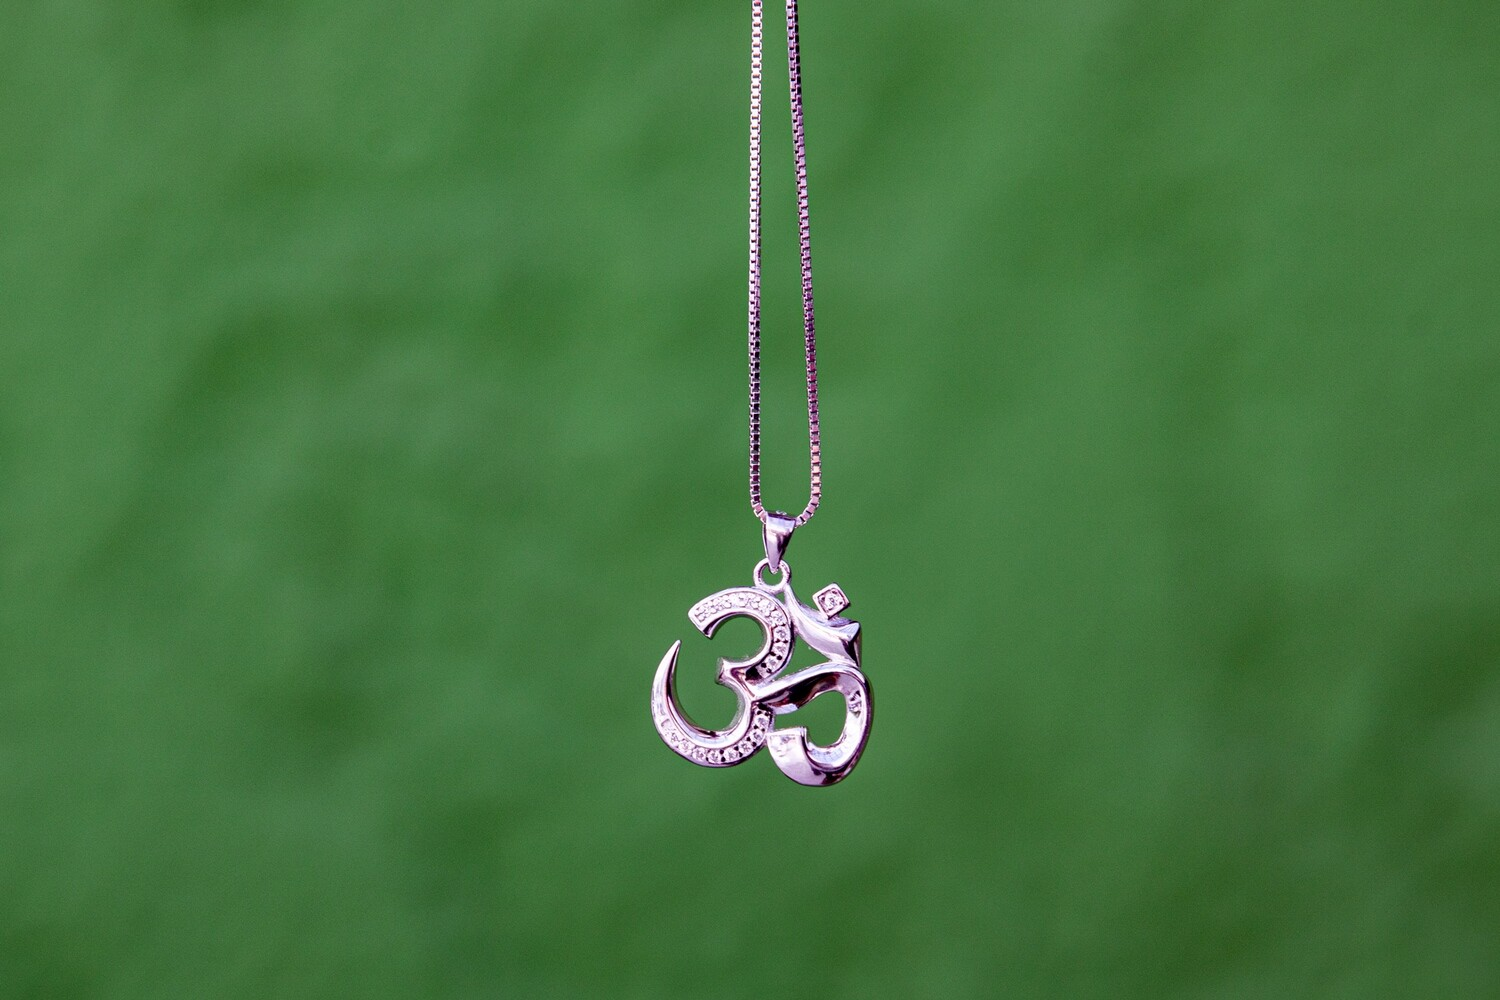 OM Necklace - Shiny Sterling Silver